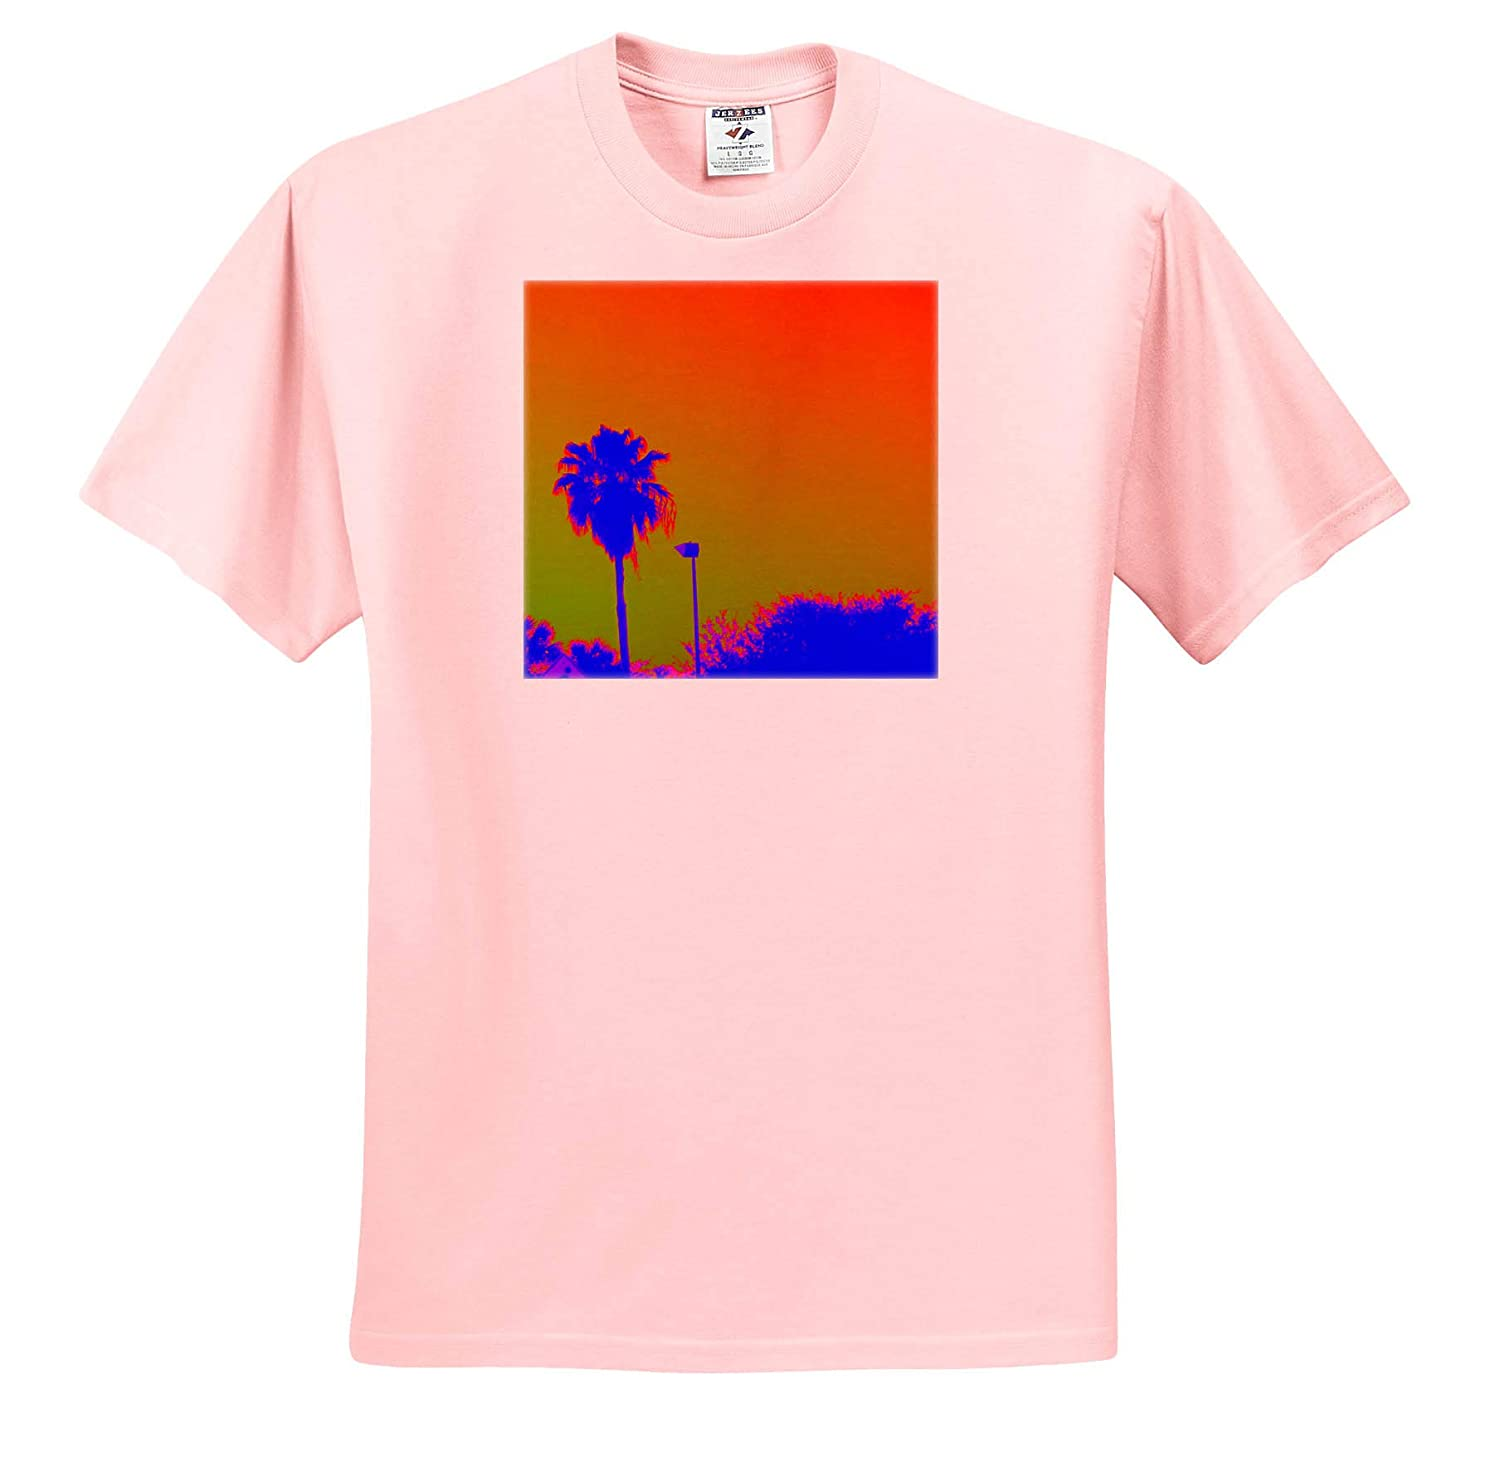 3dRose Lens Art by Florene T-Shirts Floral and Tree Abstracts Image of Blue Neon Palm with Orange Green Sky